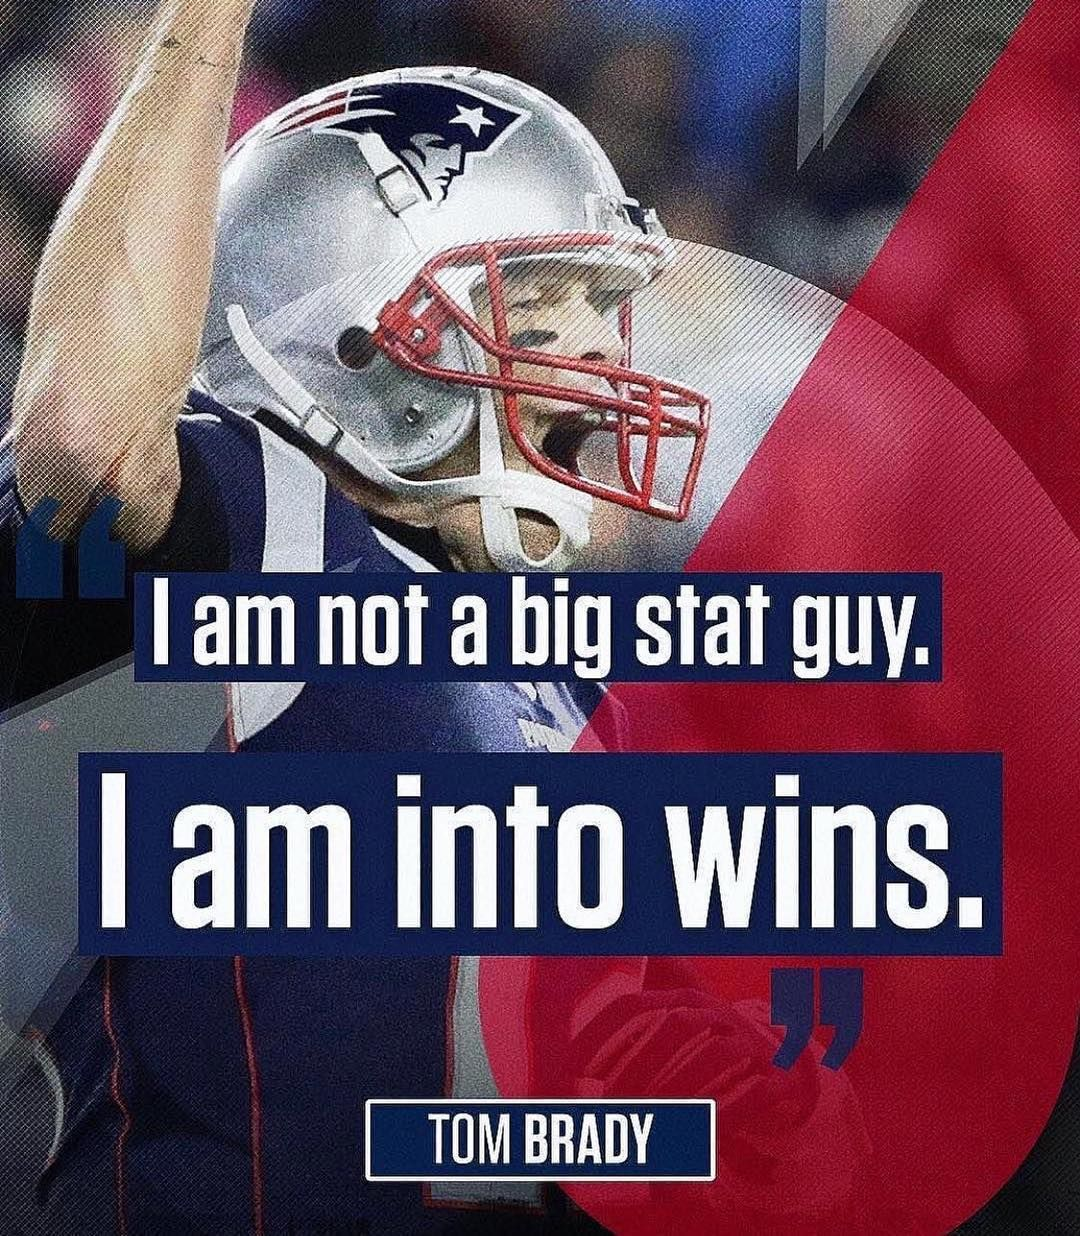 Image May Contain Text Tom Brady Tom Brady Quotes Chargers Football